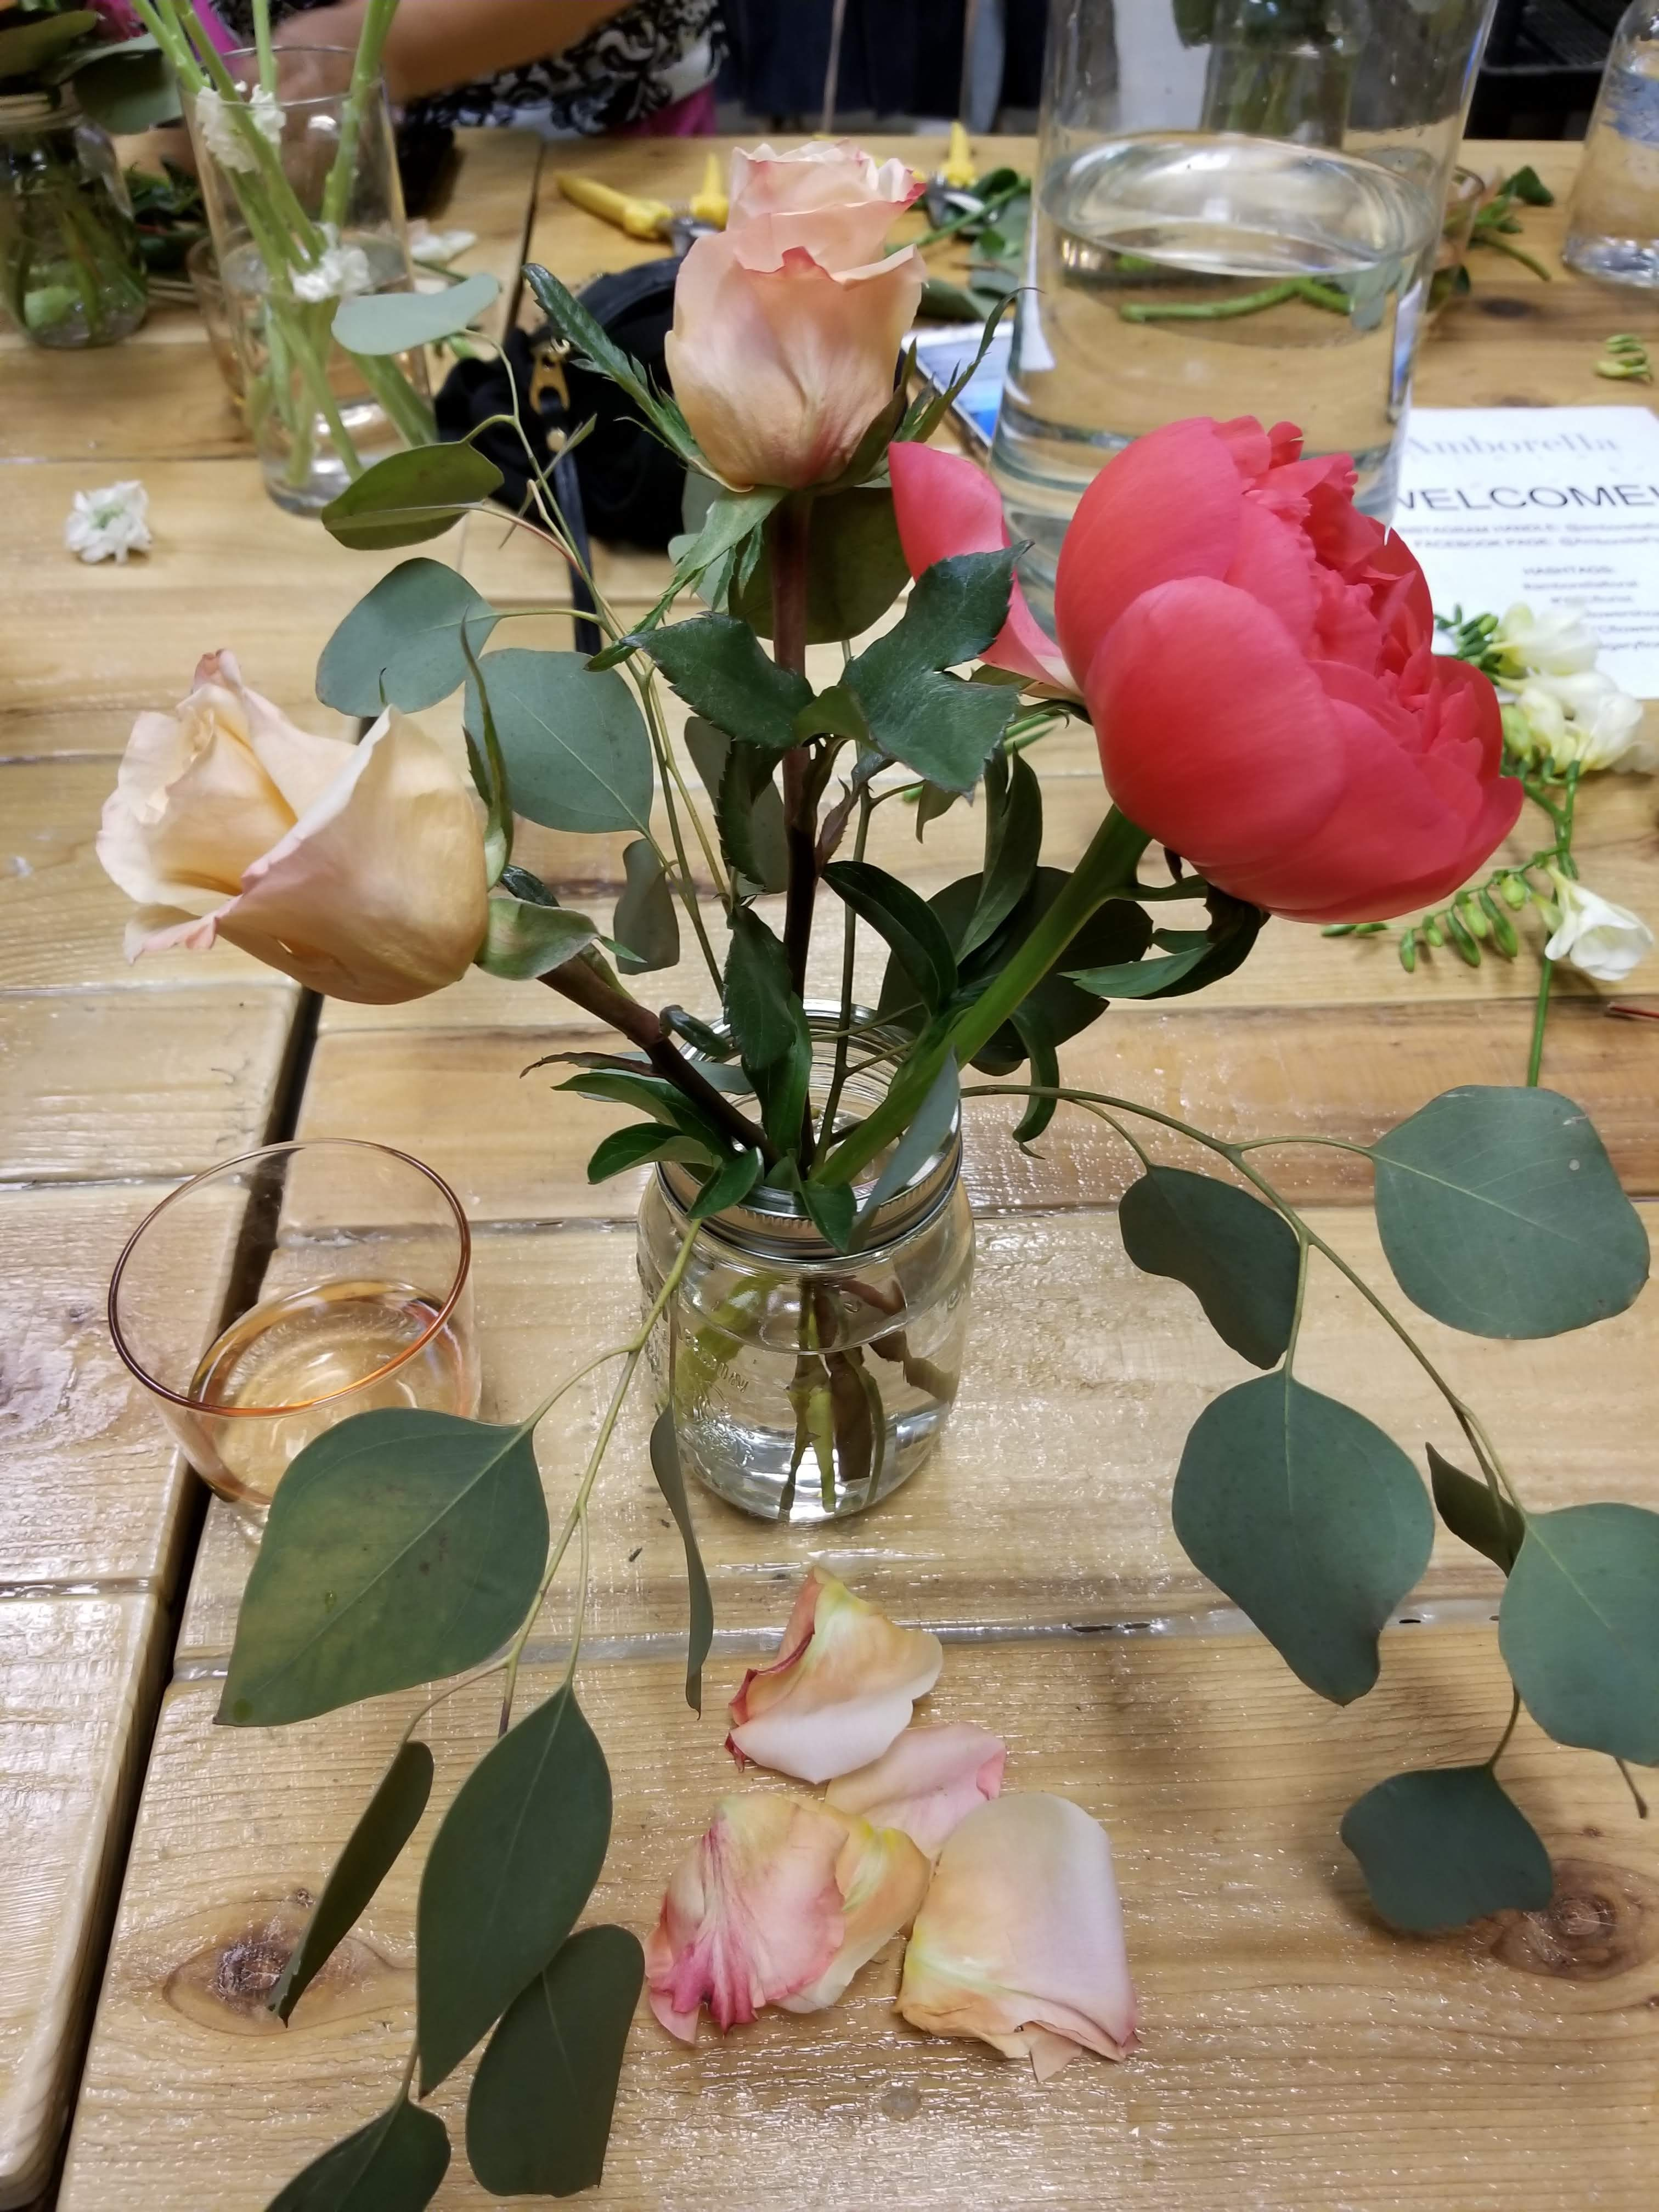 Roses were the second flowers that we added to our bouquets. We trimmed off leaves that would be lower than the water level and also took off the outer layer of petals to keep the rose looking fresh.